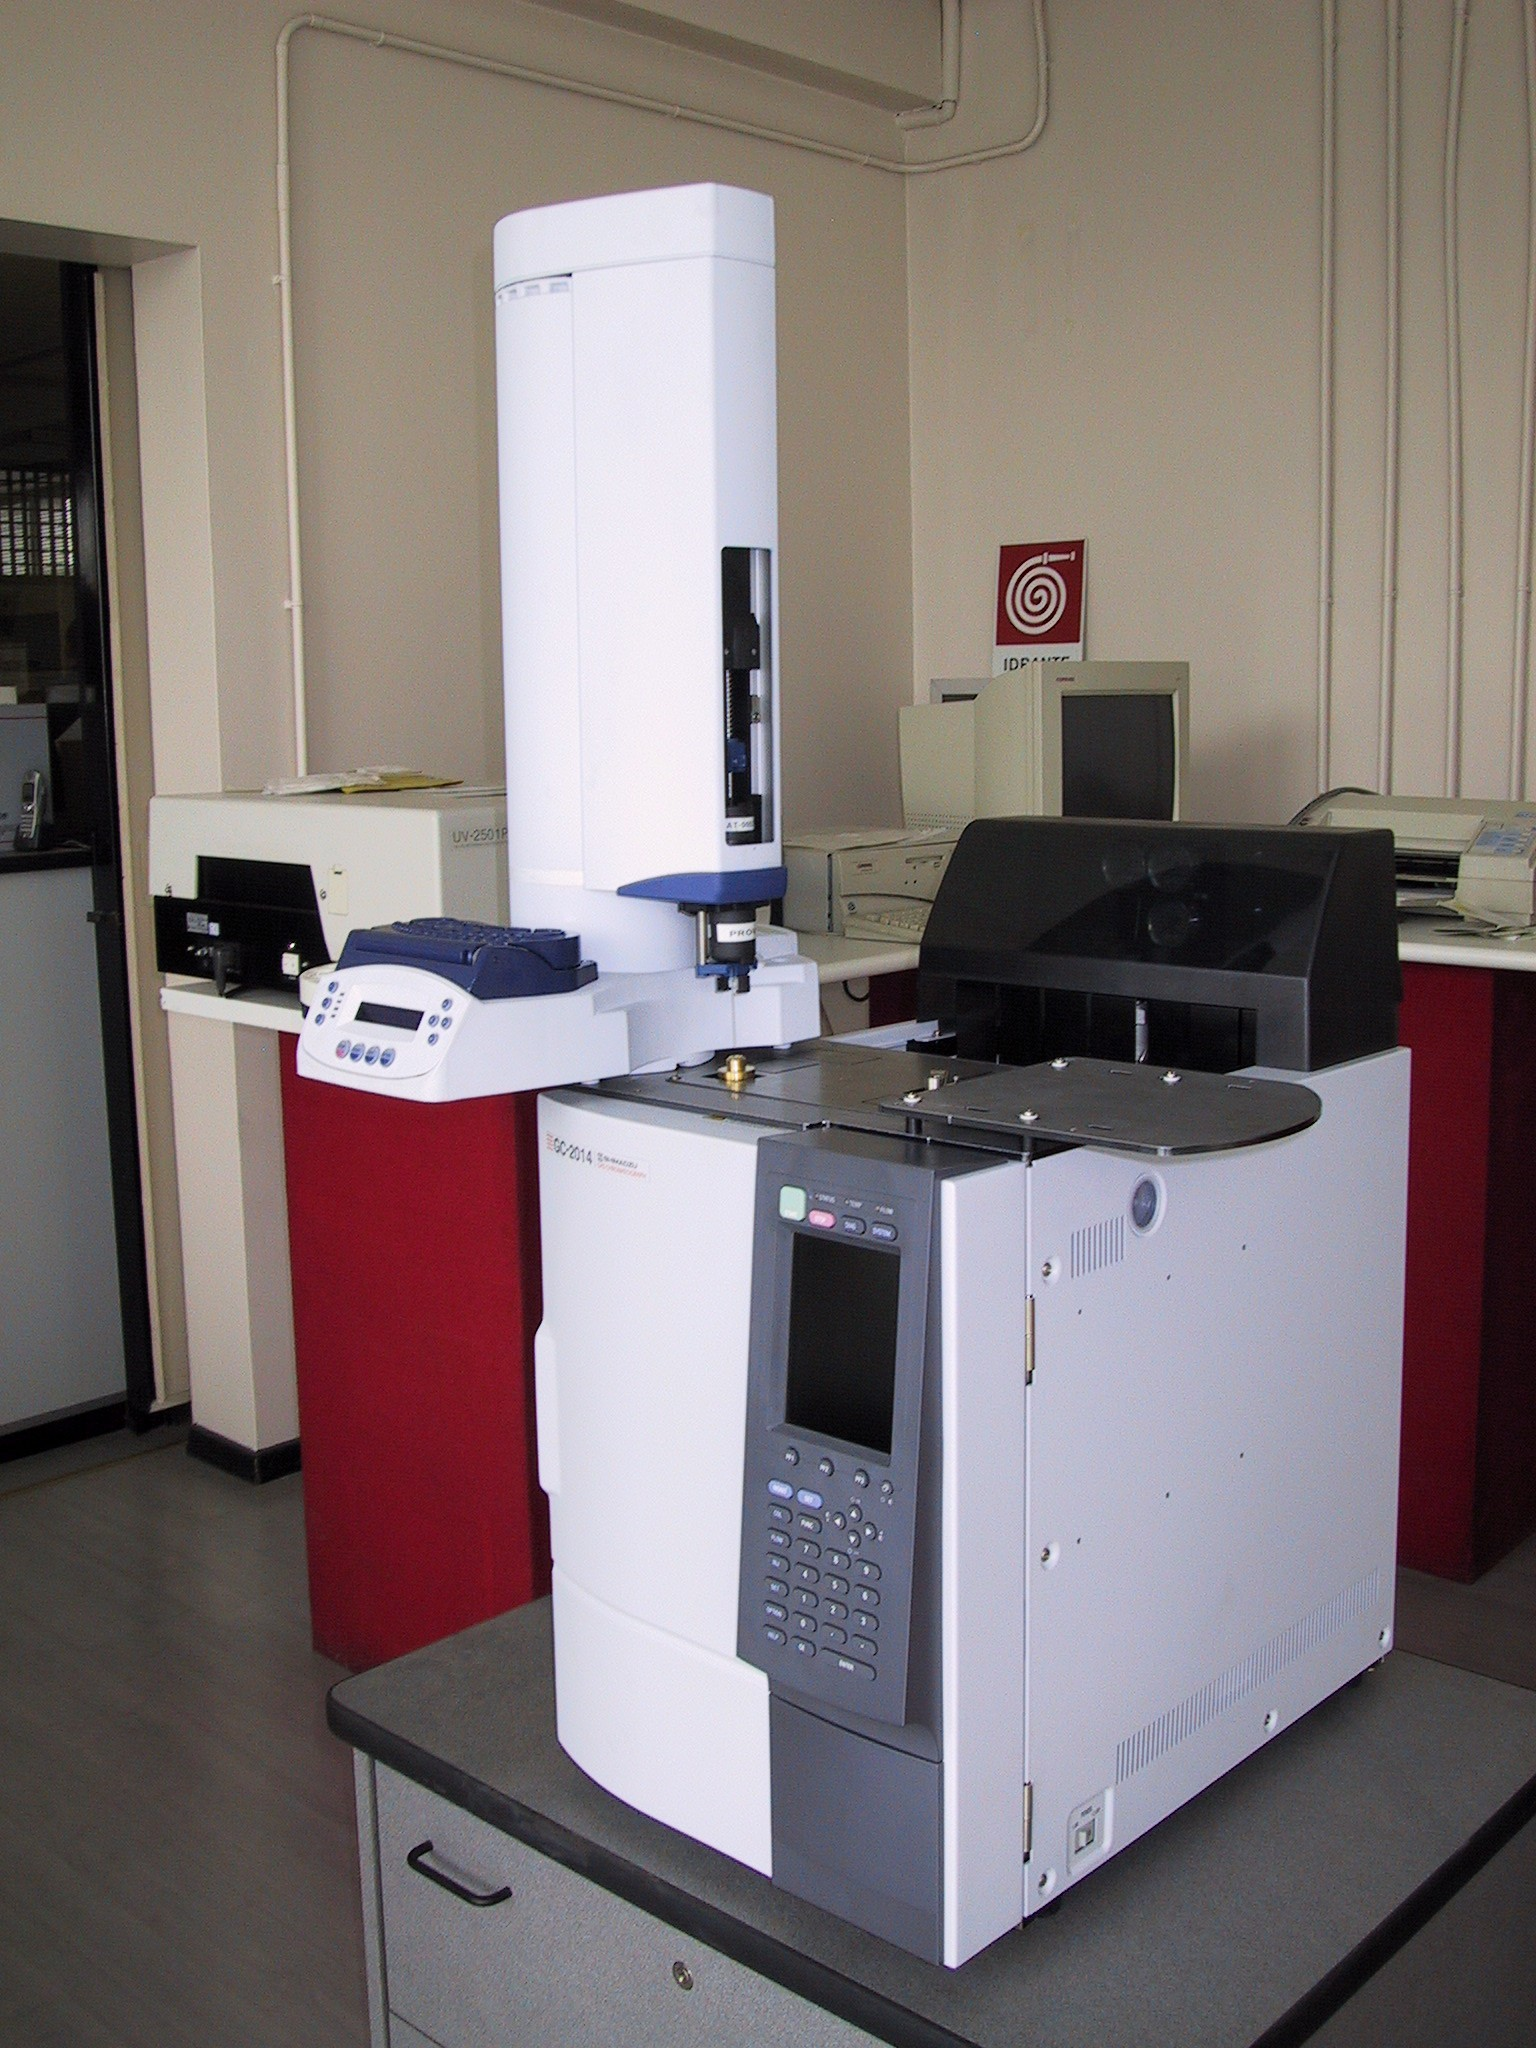 Gas chromatograph of the sort used to analyze lipids.  By Mcbort [Public domain], via Wikimedia Commons